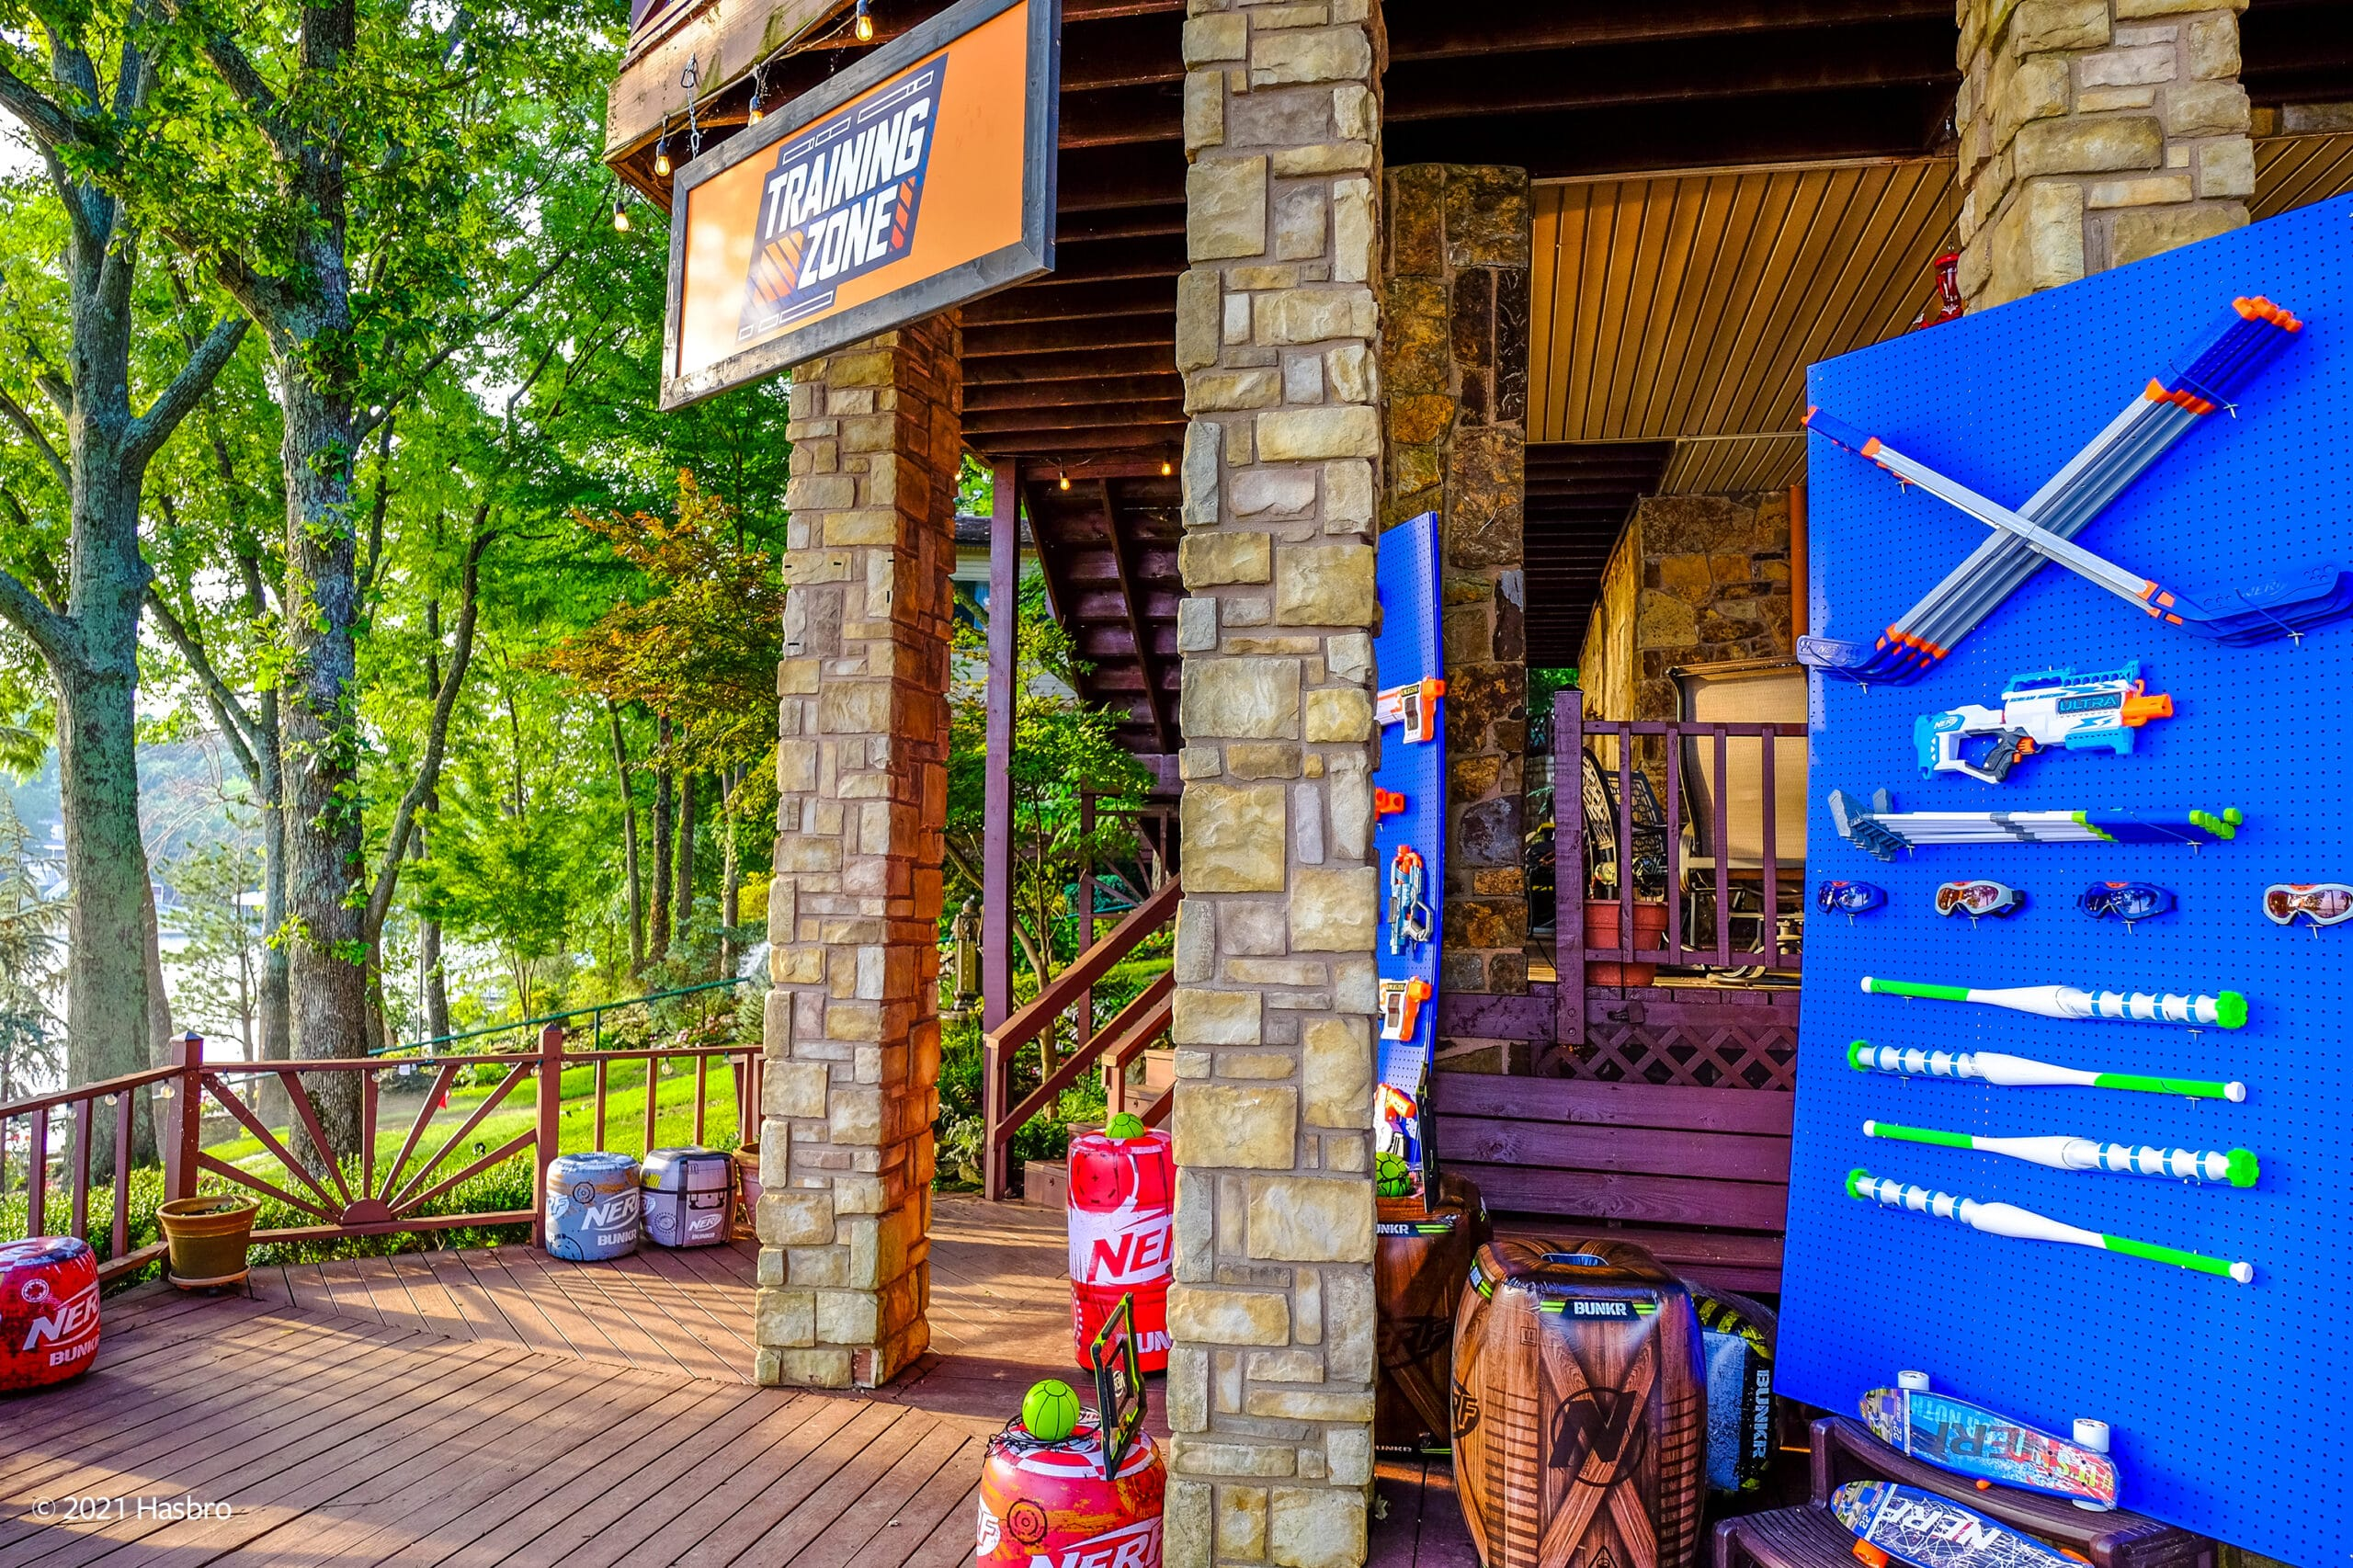 Hasbro and Vrbo are renting out a Nerf-themed lake house to one lucky family 21